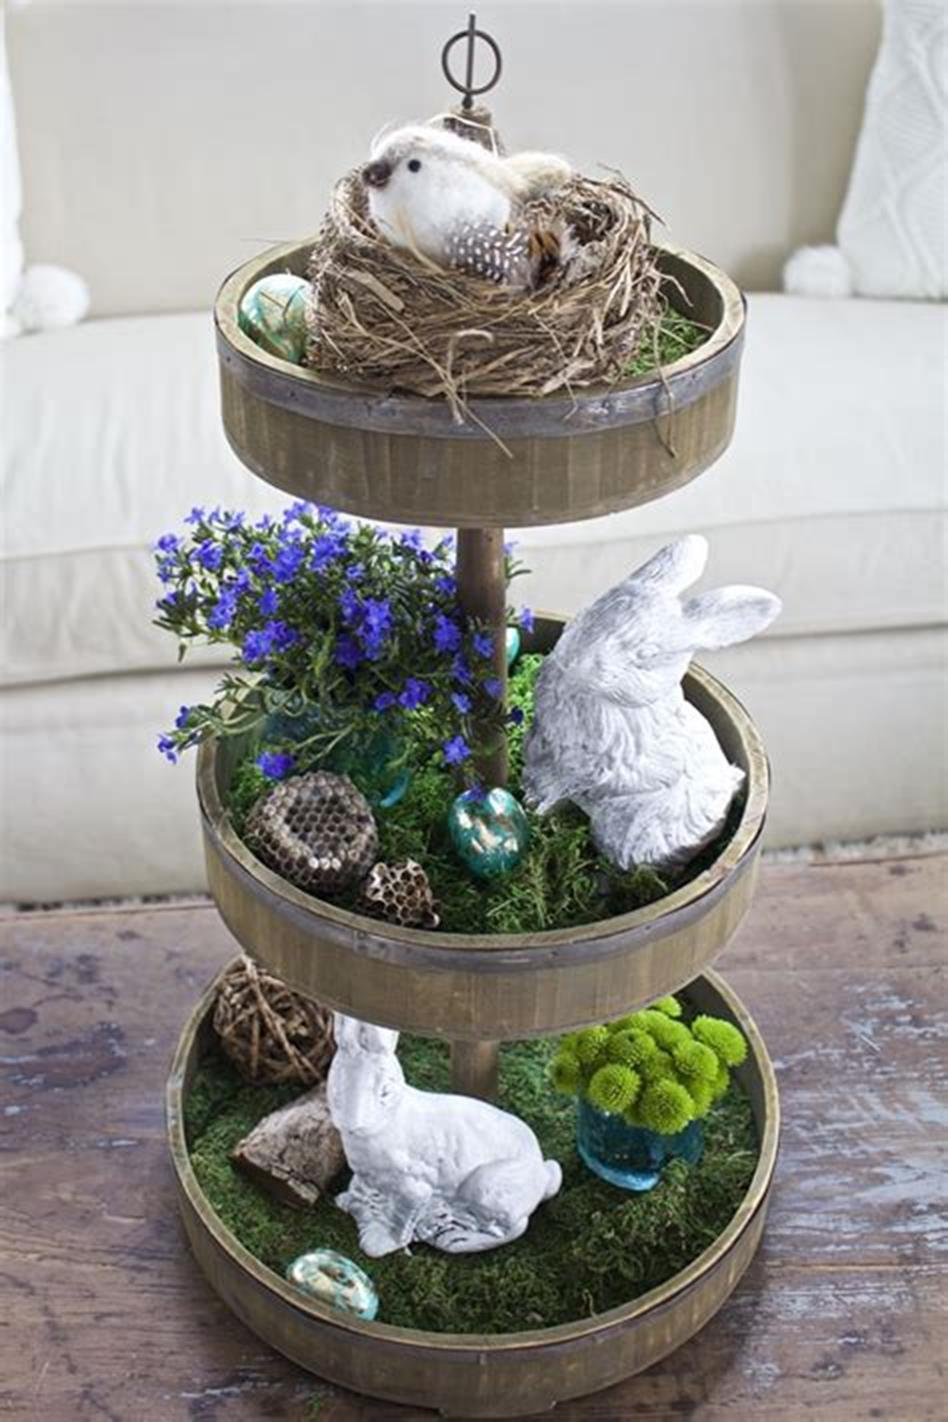 40 Creative Spring Decor Tiered Tray Ideas 29 Decorelated